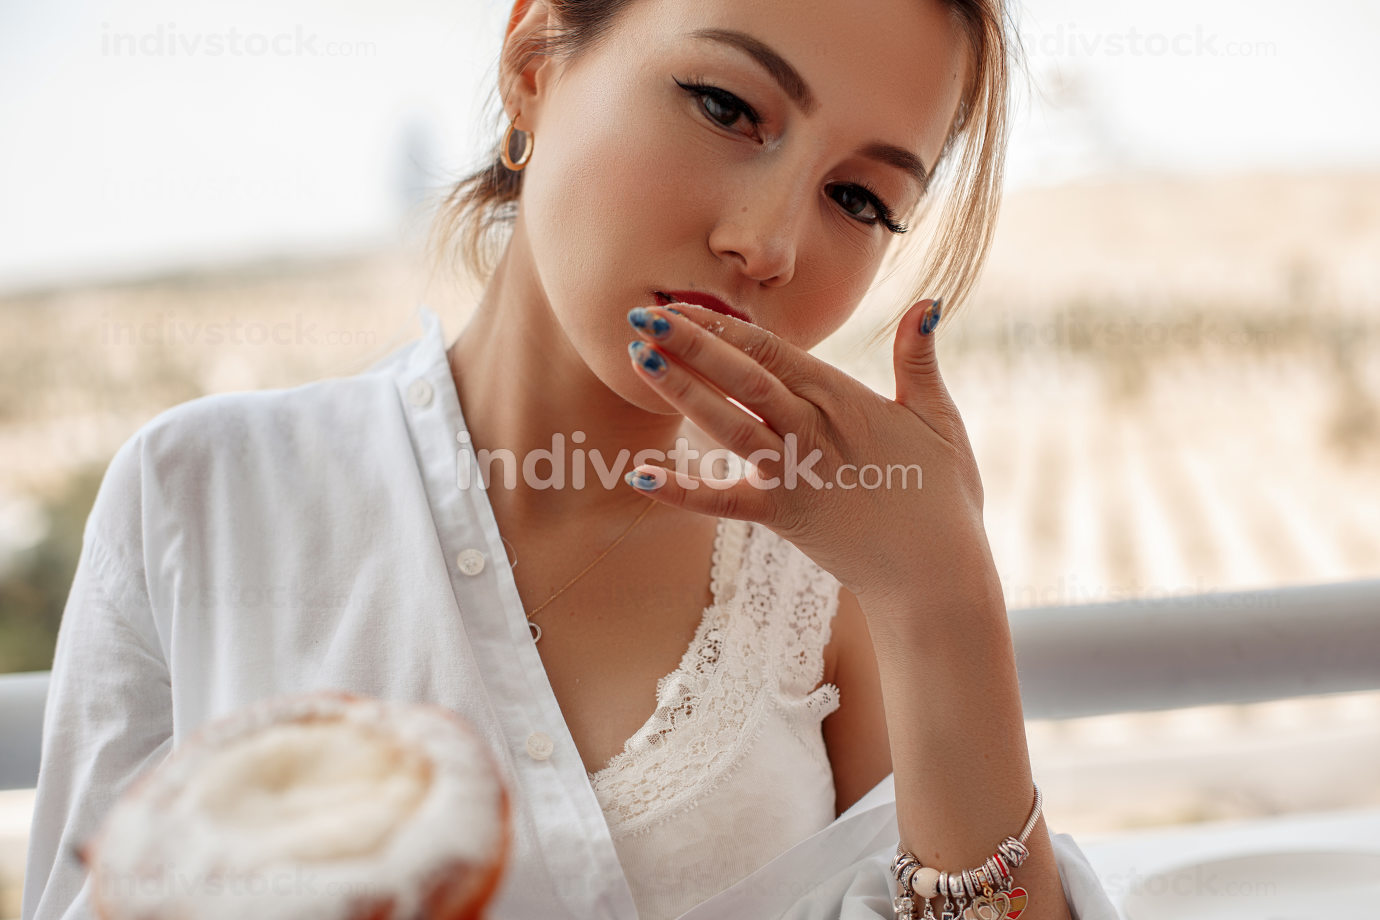 young beautiful Asian girl in beige lace shorts,white shirt eating dessert, pie on the balcony. selective focus. small focus area.